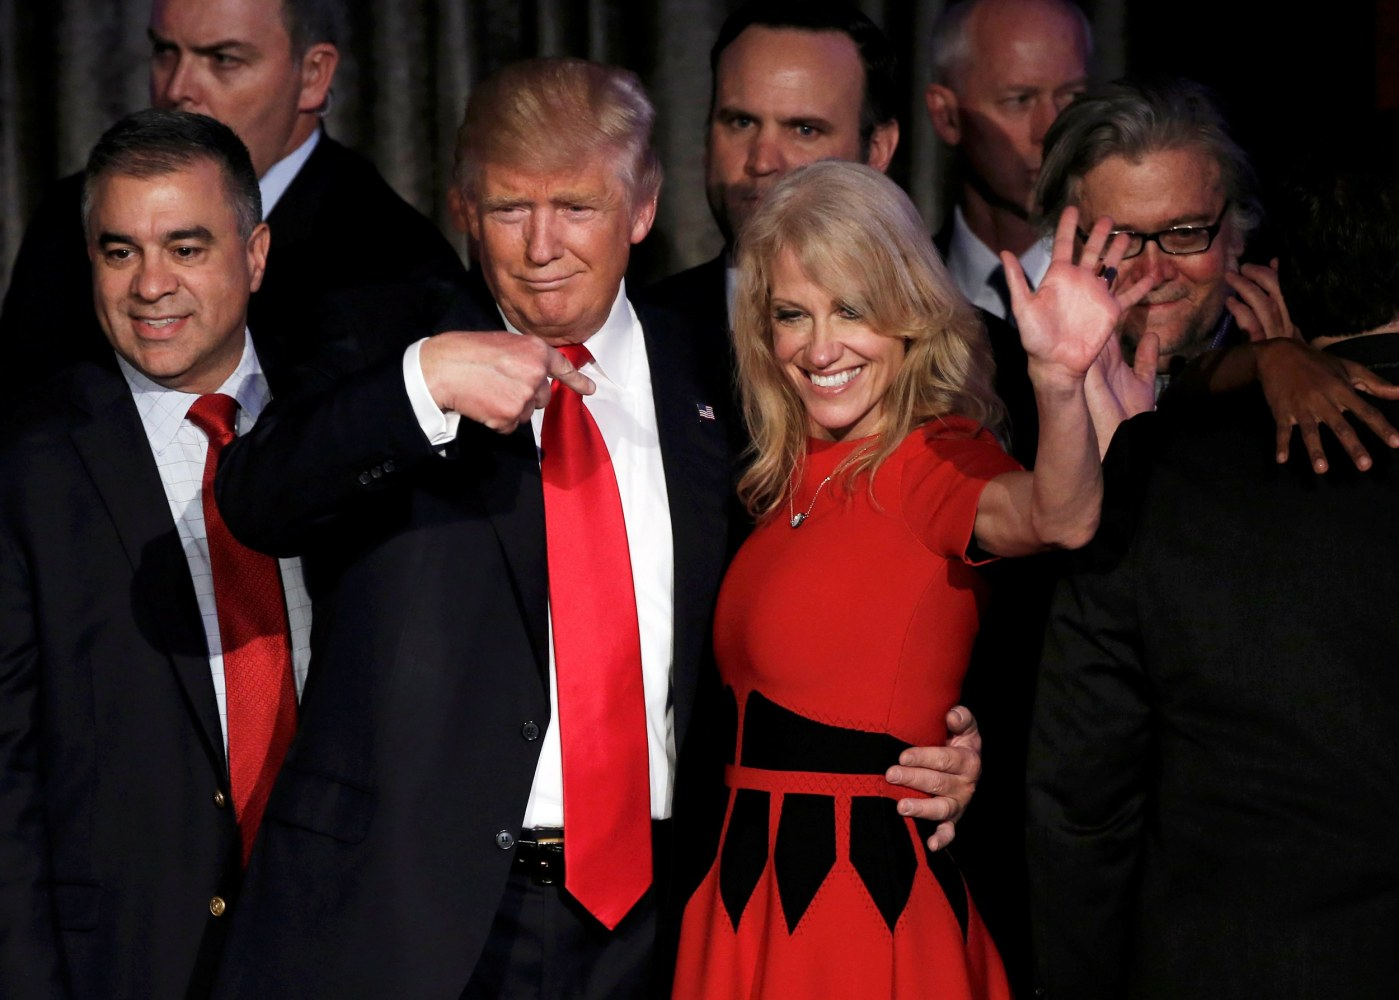 trump s campaign chief kellyanne conway as counselor to the image donald trump and kellyanne conway pictured after his victory